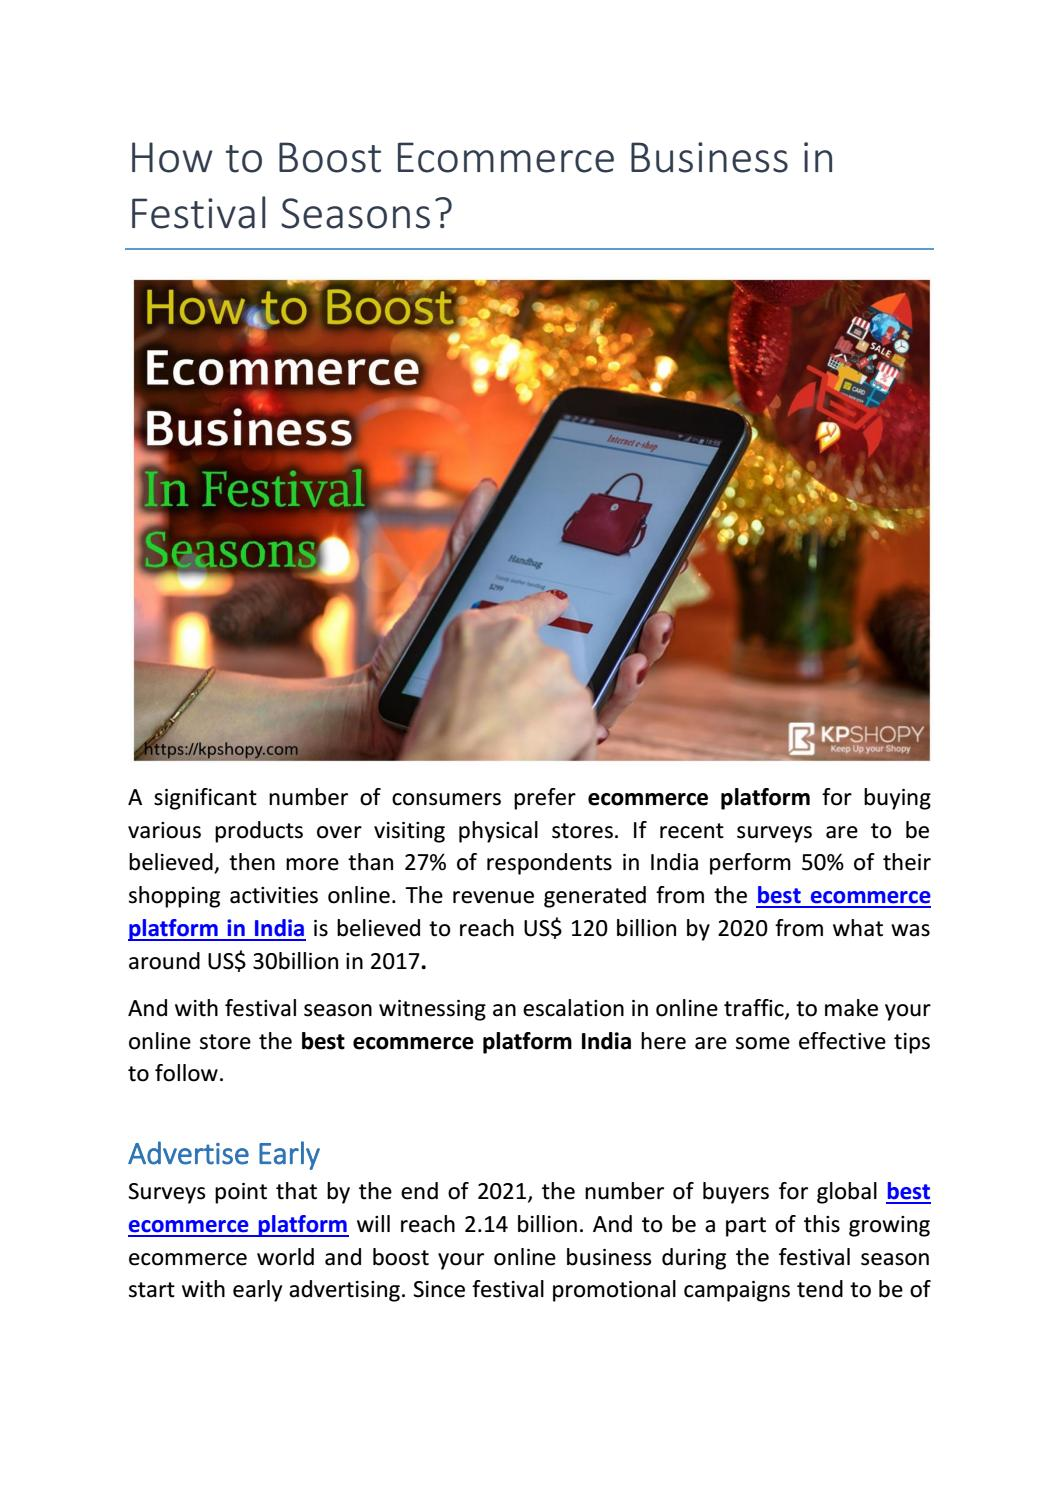 Best Ecommerce Platform 2021 How to Boost Ecommerce Business in Festival Seasons? by Kpshopy